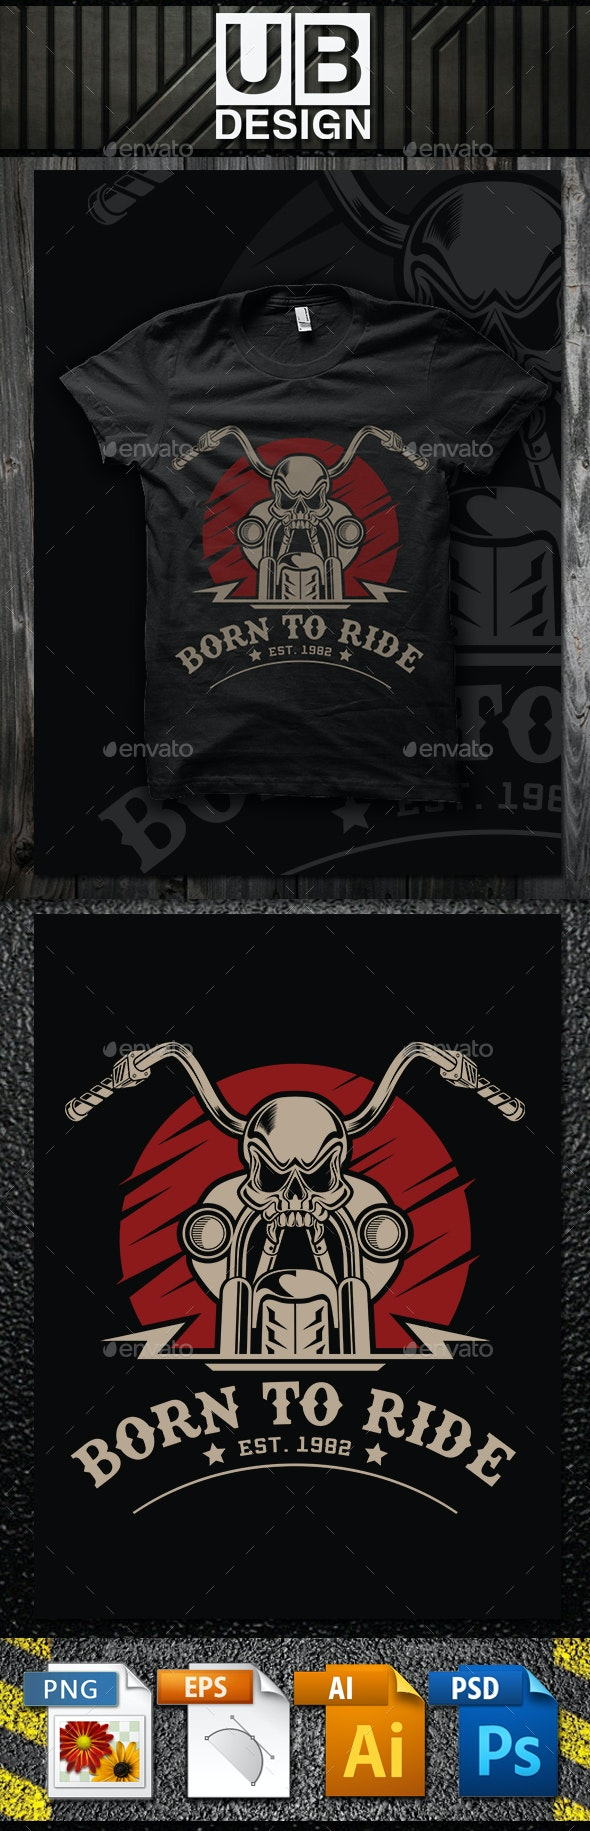 Born to Ride - Designs T-Shirts